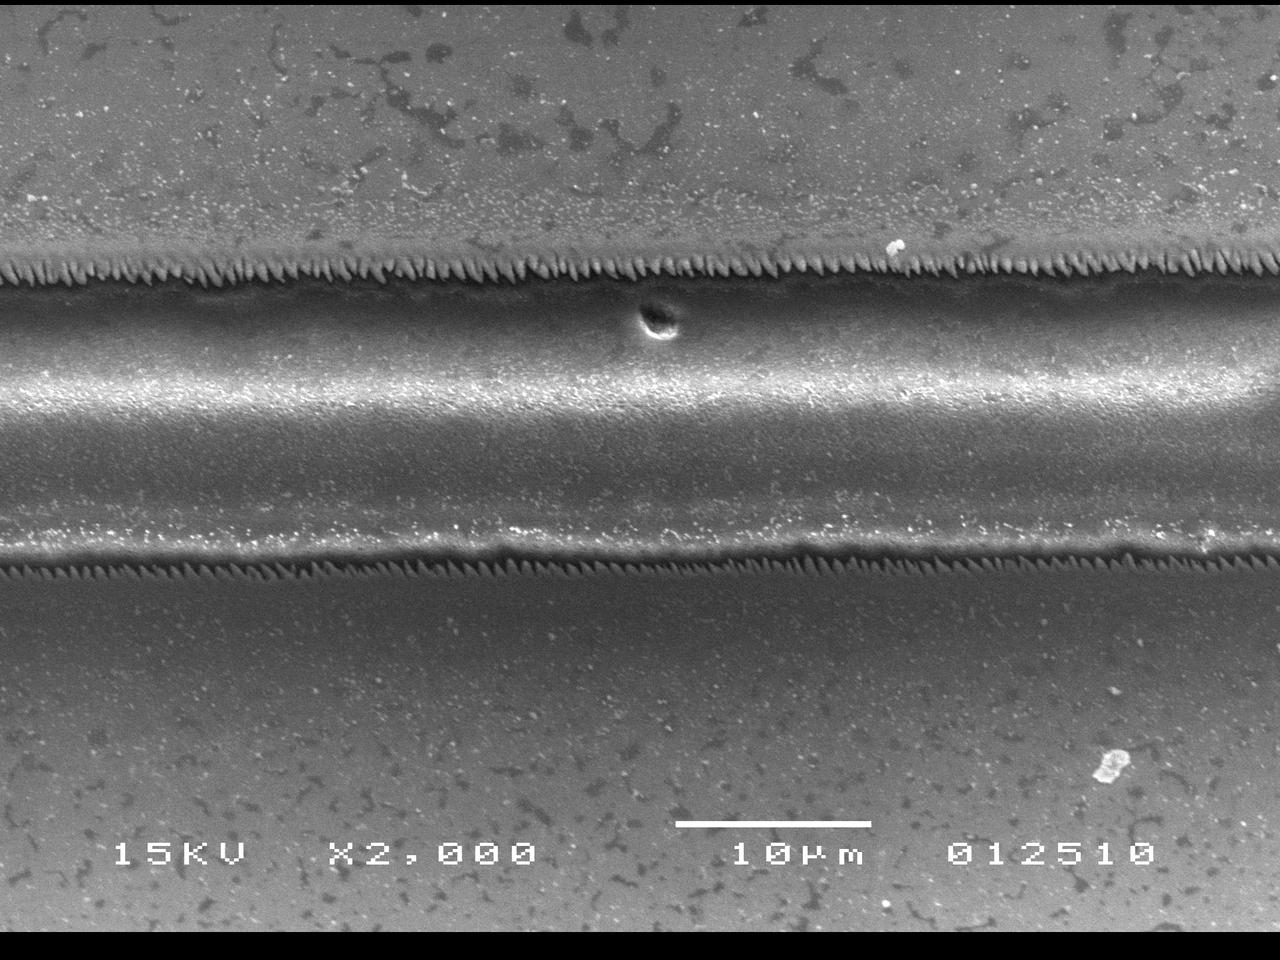 A microchannel created using the laser scribing technique (Photo: Purdue University School of Mechanical Engineering image/Yung Shin)